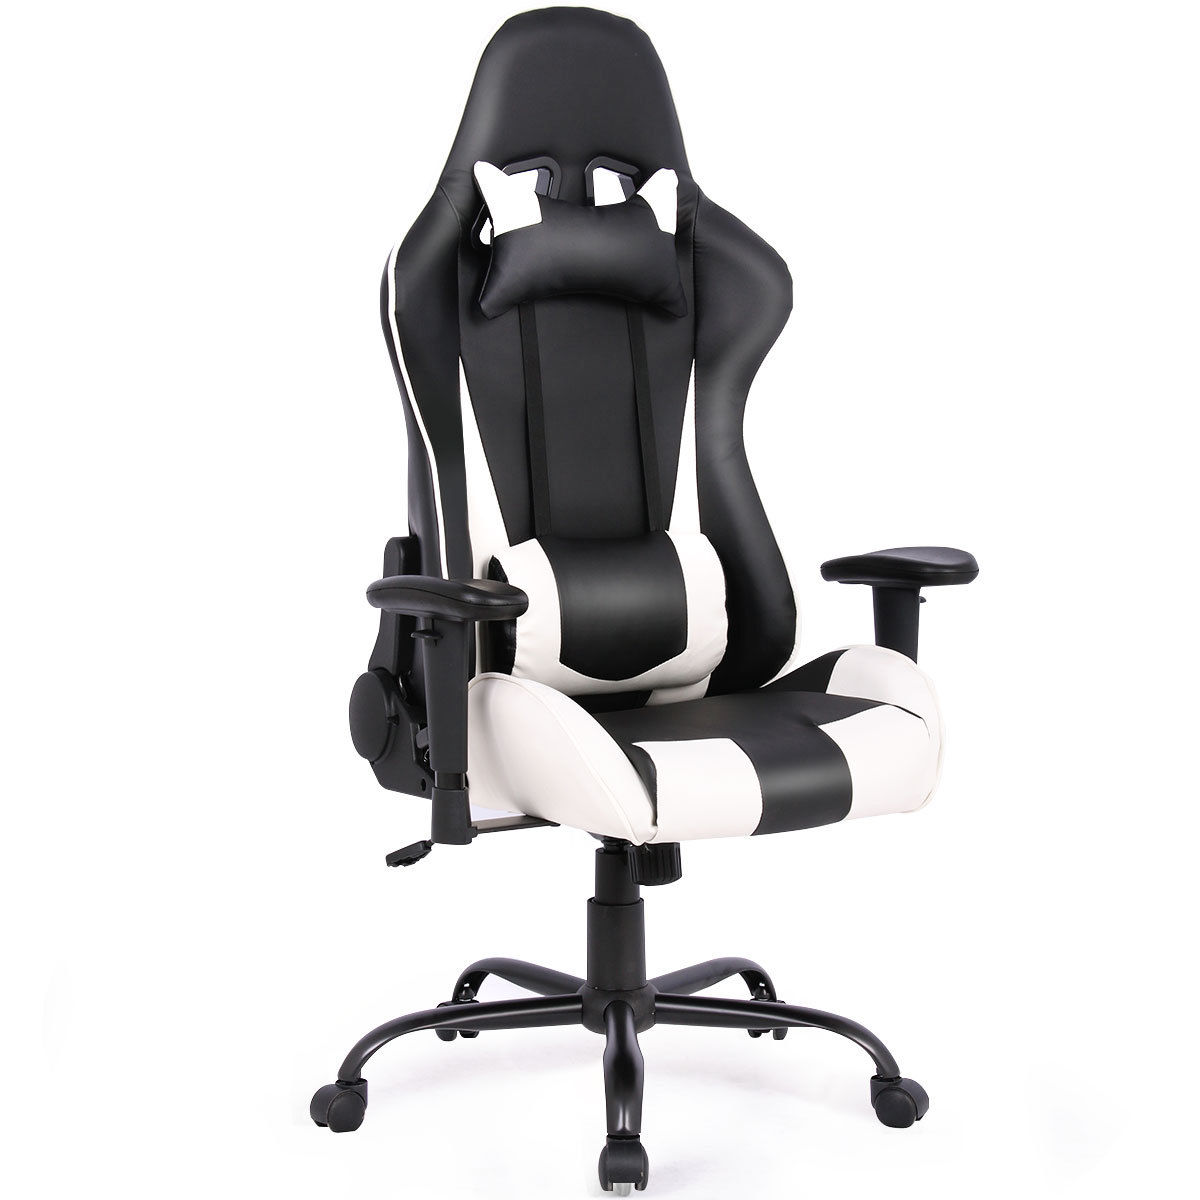 Costway Gaming Chair Racing High Back Office Chair w/ Lumbar Support and Headrest White